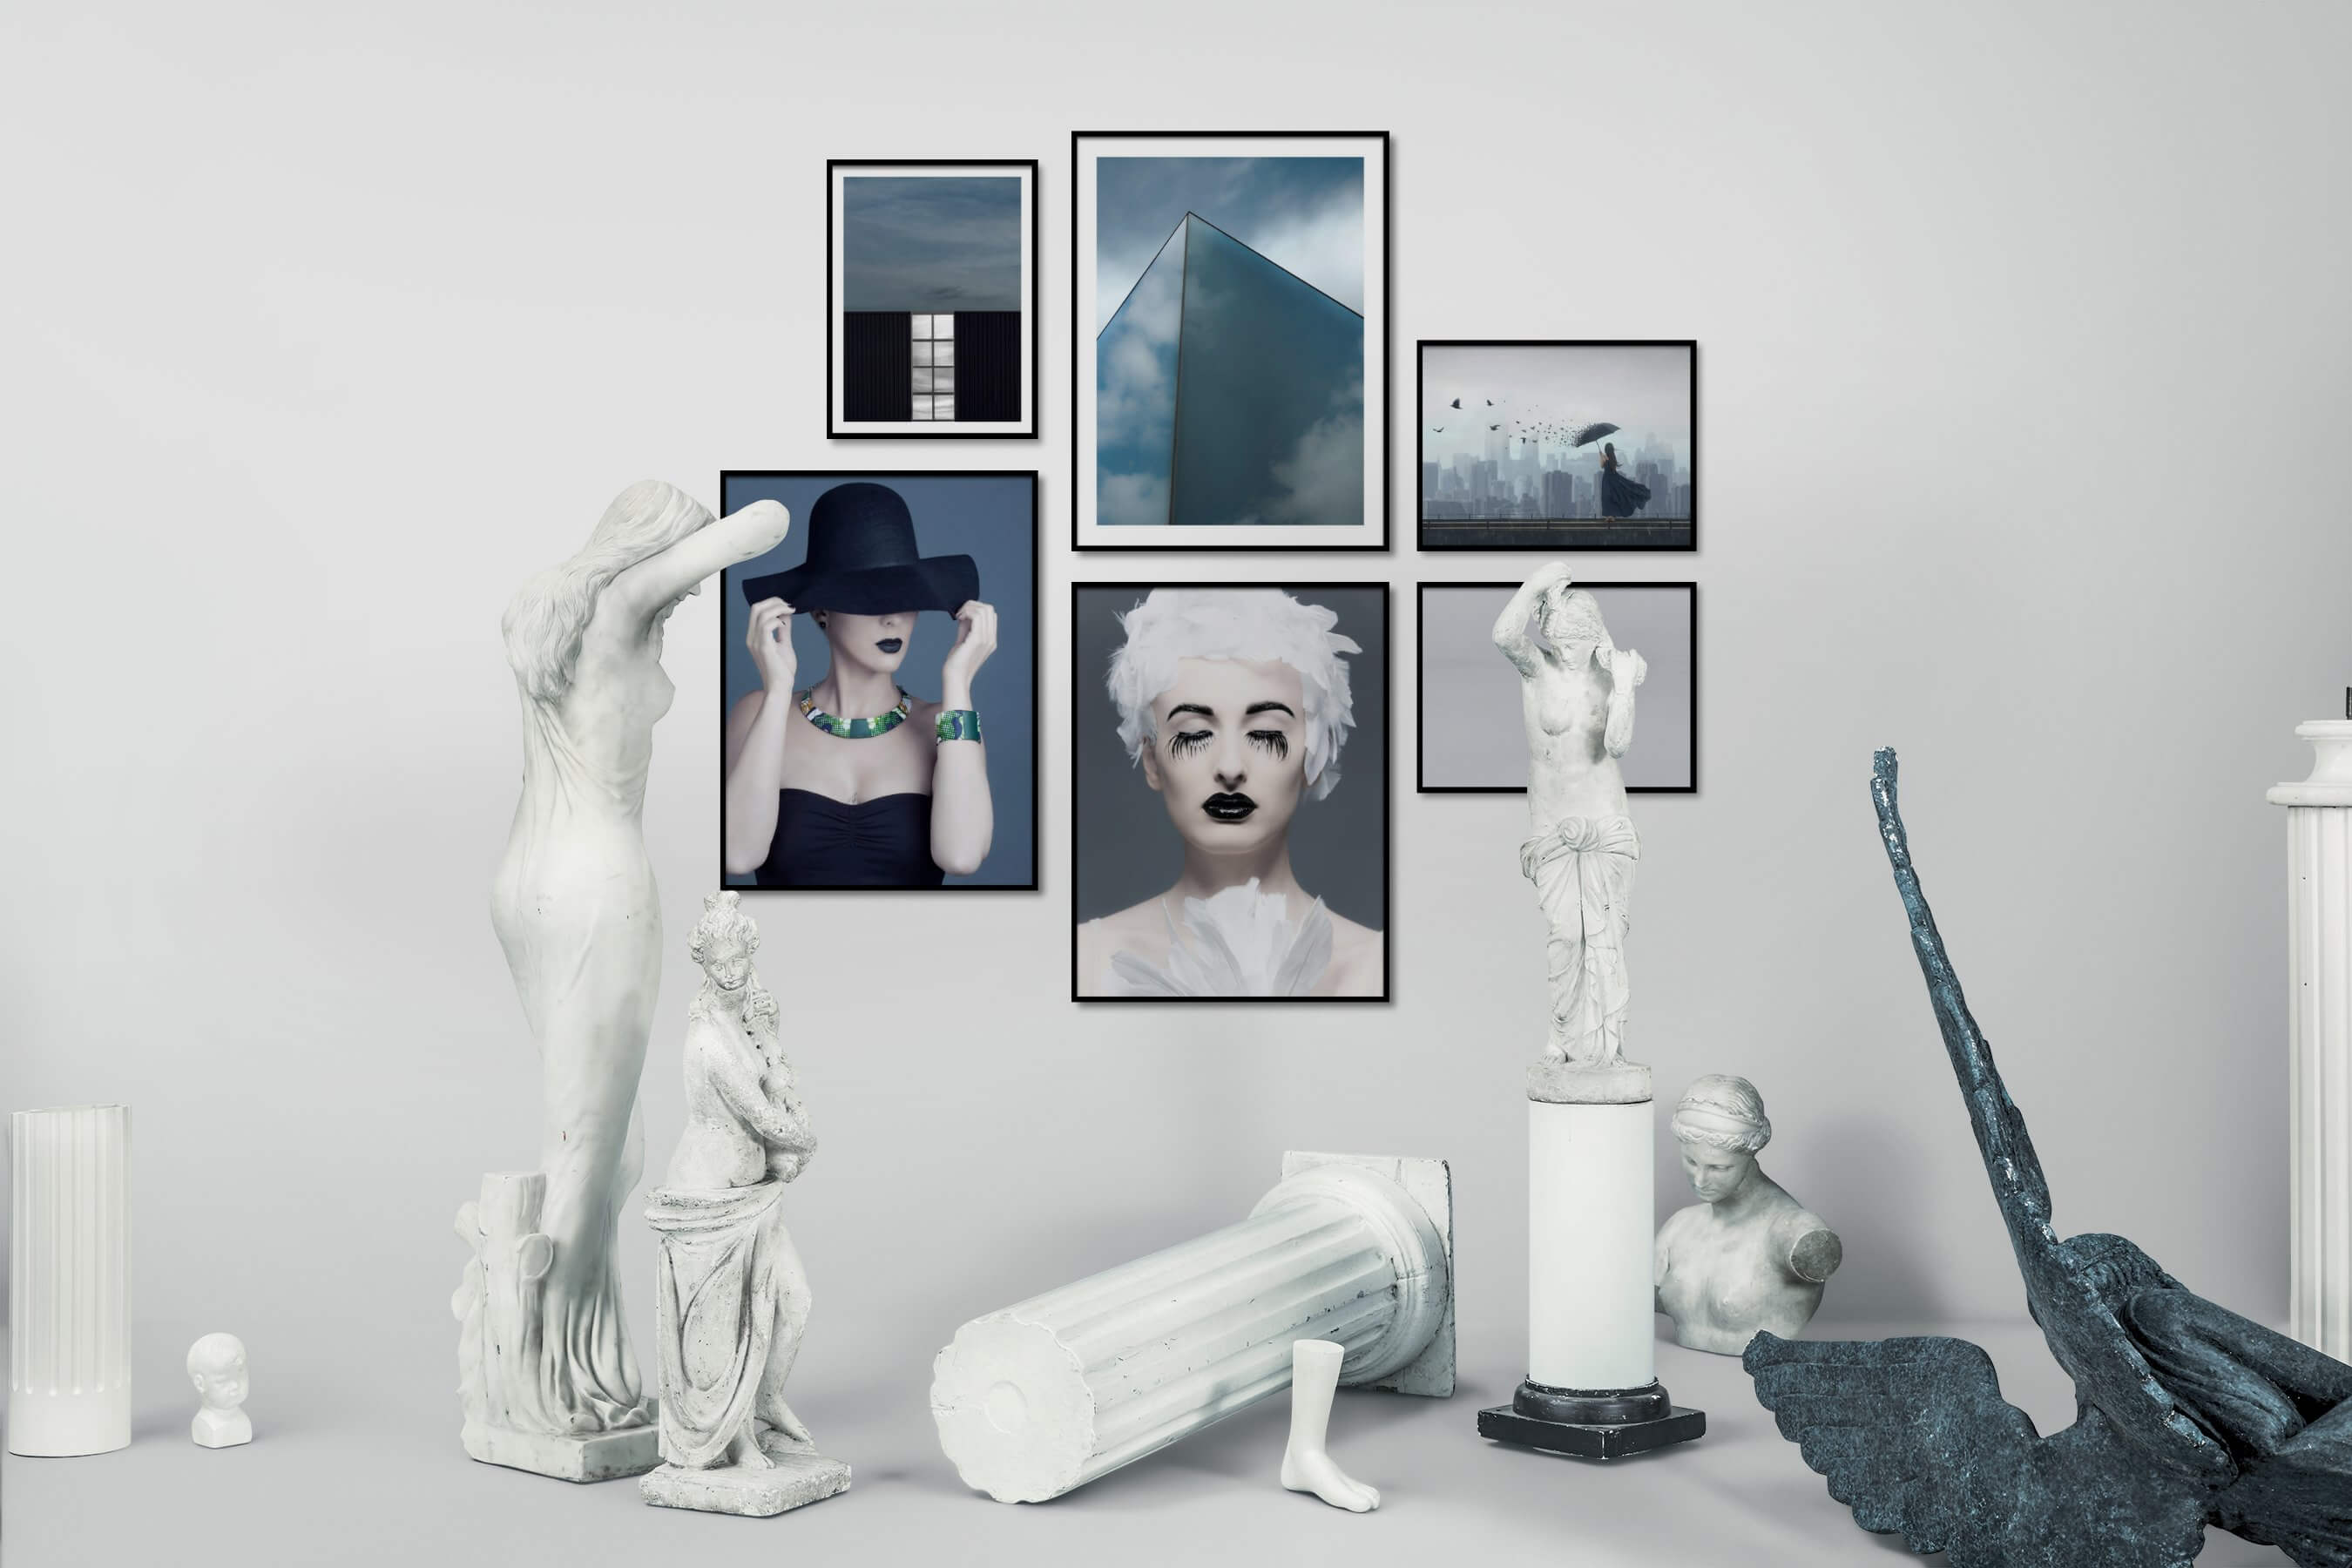 Gallery wall idea with six framed pictures arranged on a wall depicting For the Minimalist, Fashion & Beauty, Artsy, City Life, and Black & White